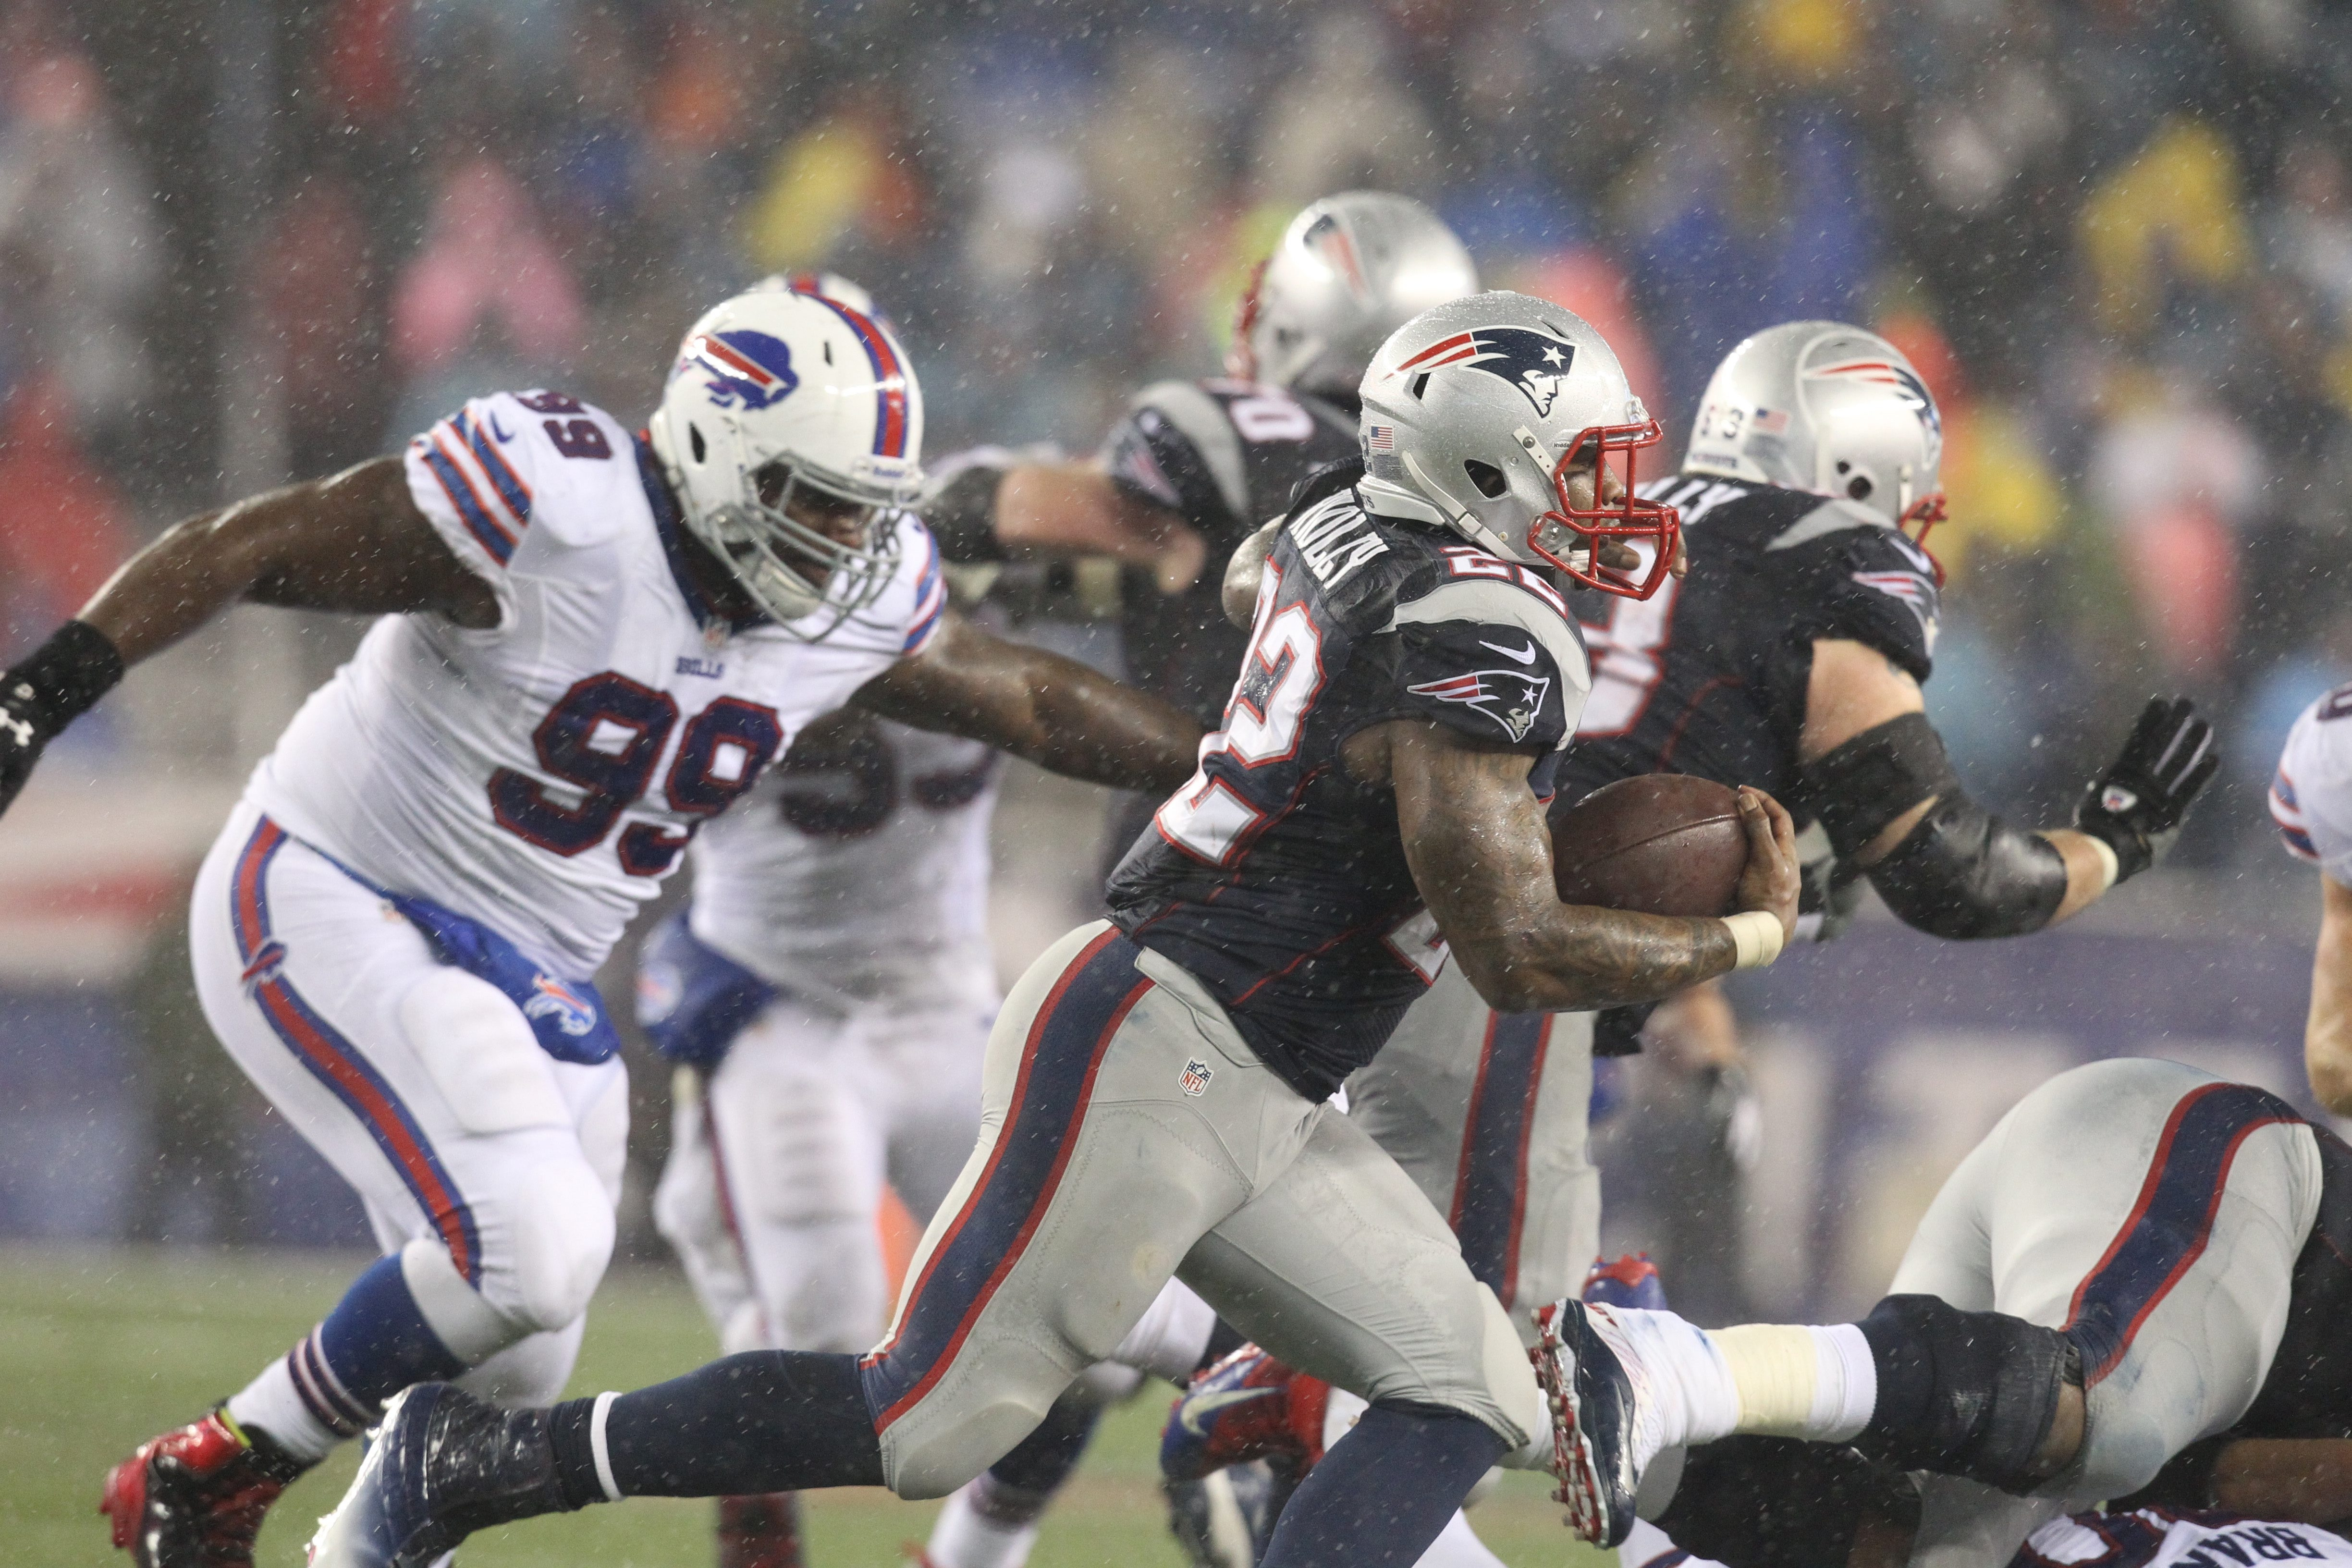 Patriots running back Stevan Ridley (22) beats Bills defensive tackle Marcell Dareus (99) in the third quarter during Sunday's game.